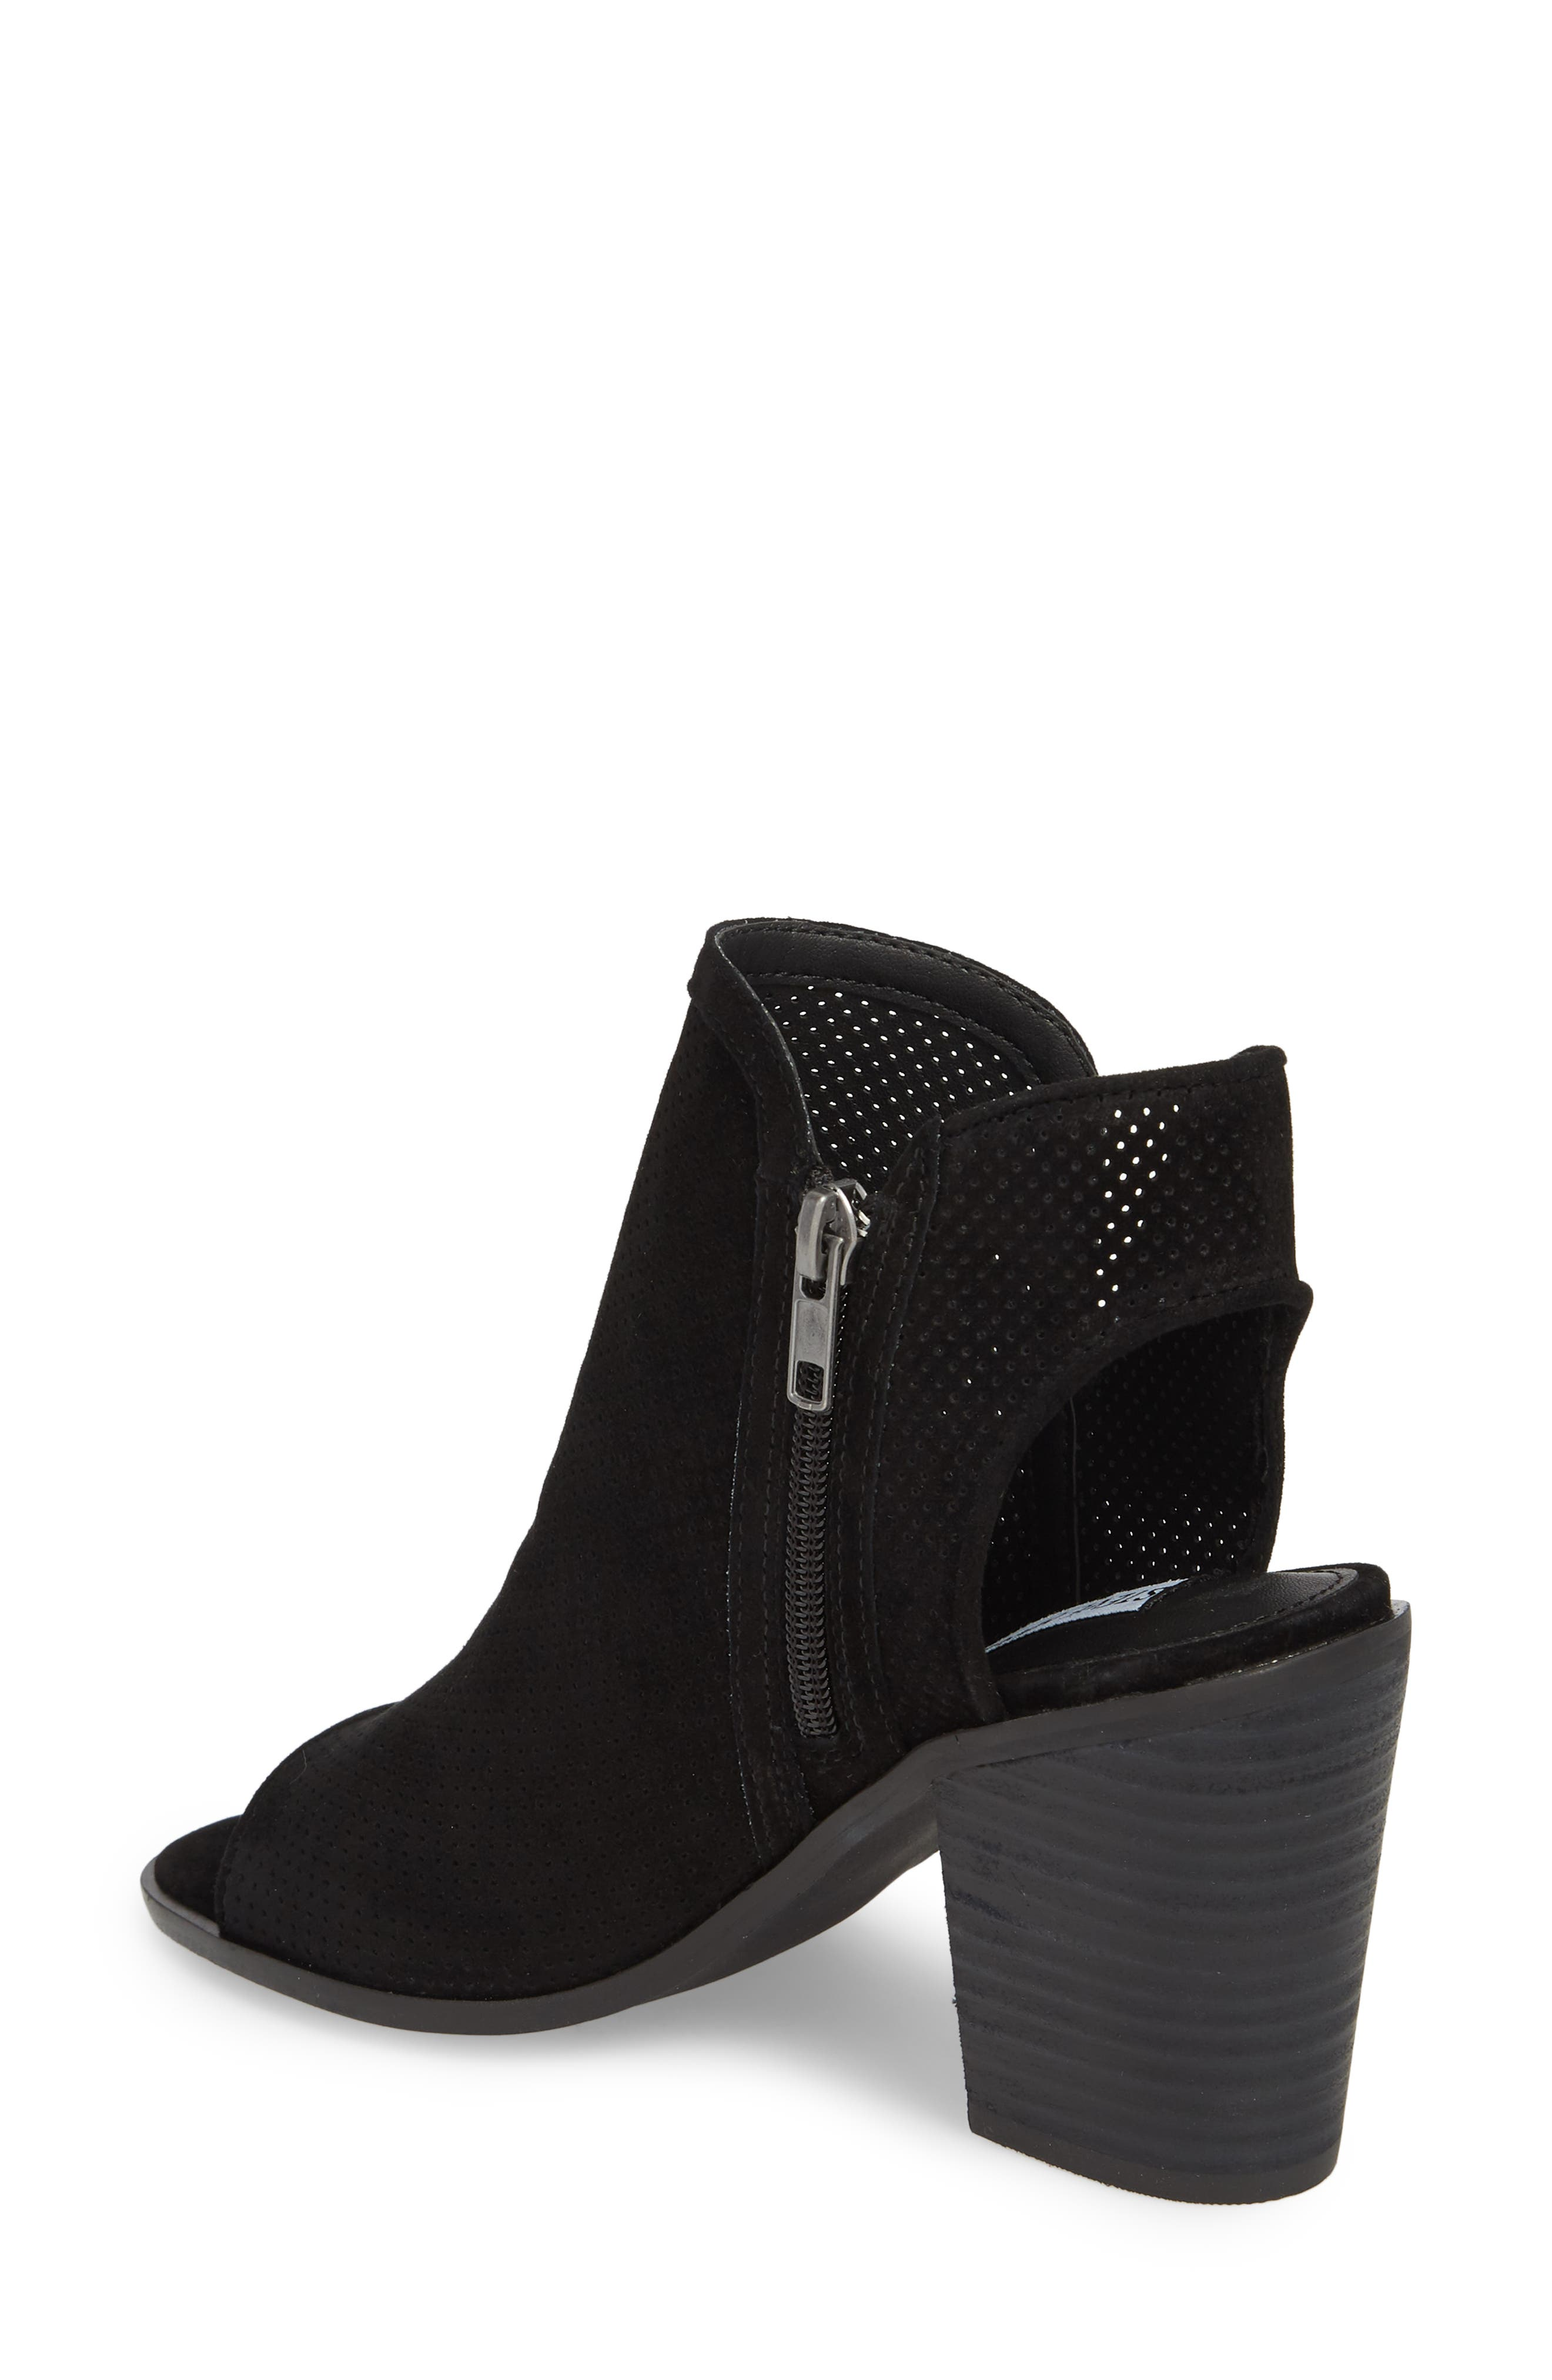 Maxine Perforated Bootie,                             Alternate thumbnail 2, color,                             006